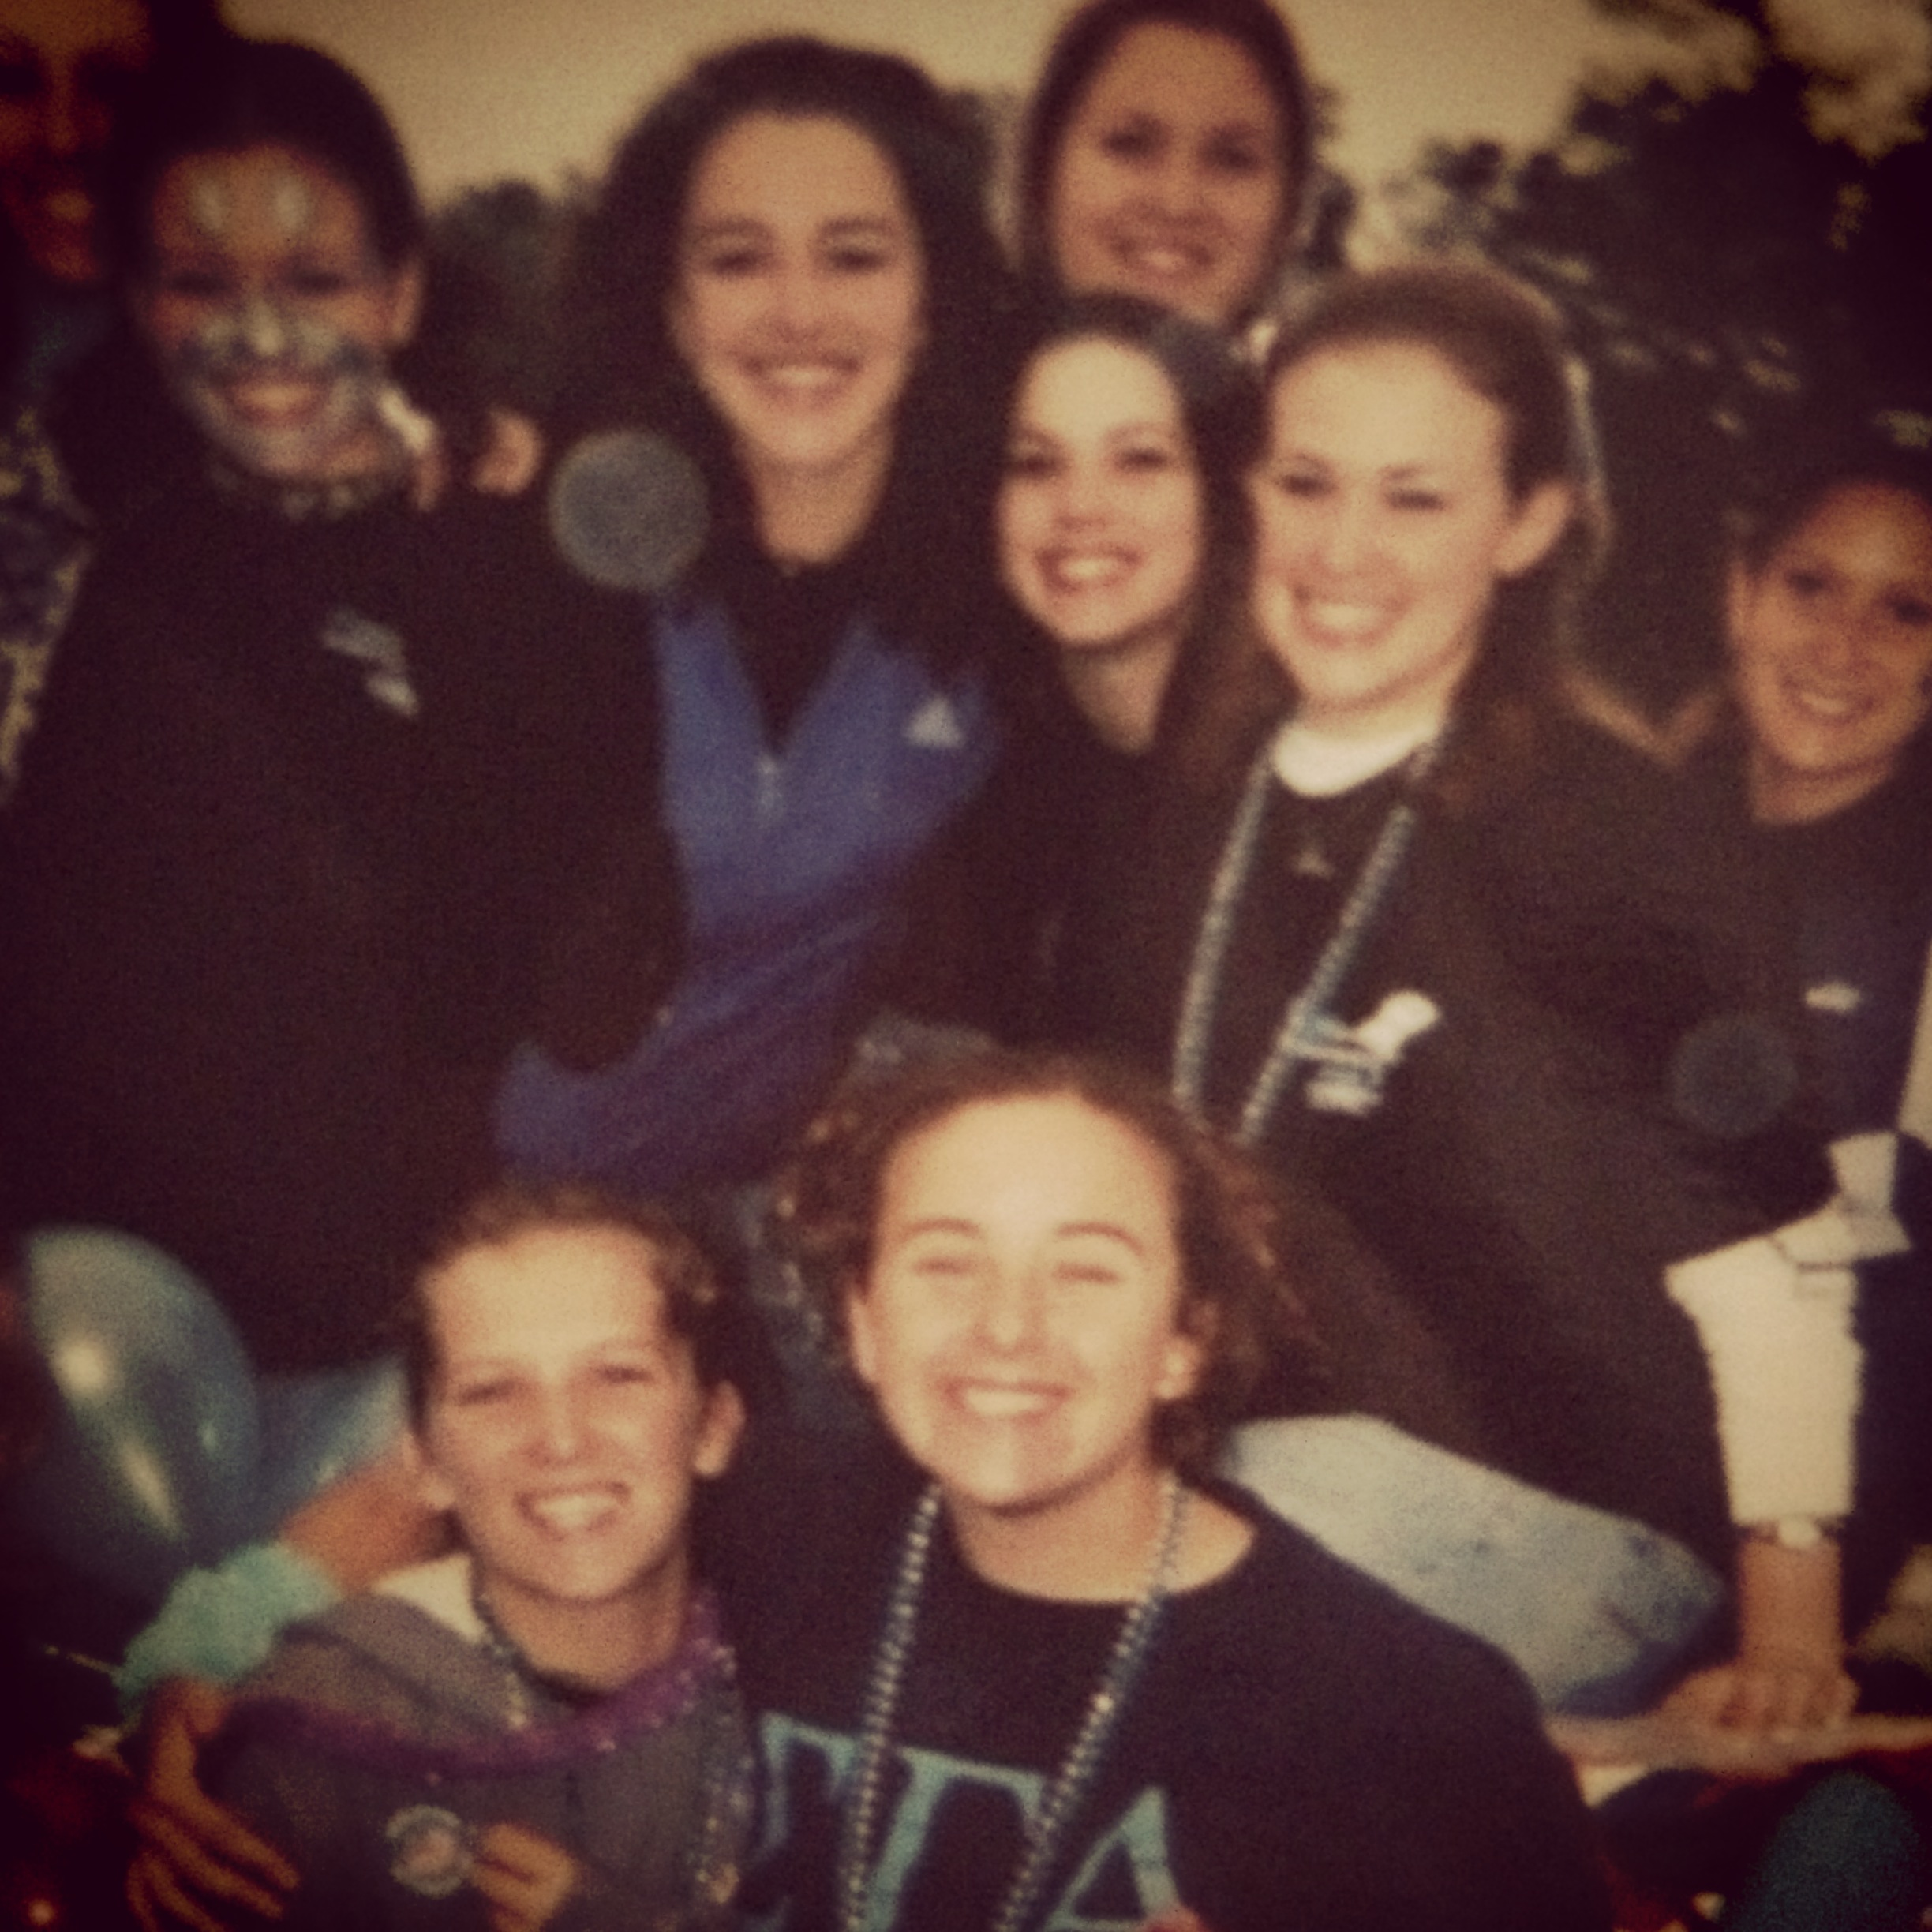 #tbt Senior Year Student Government - 2002 Homecoming Parade Float